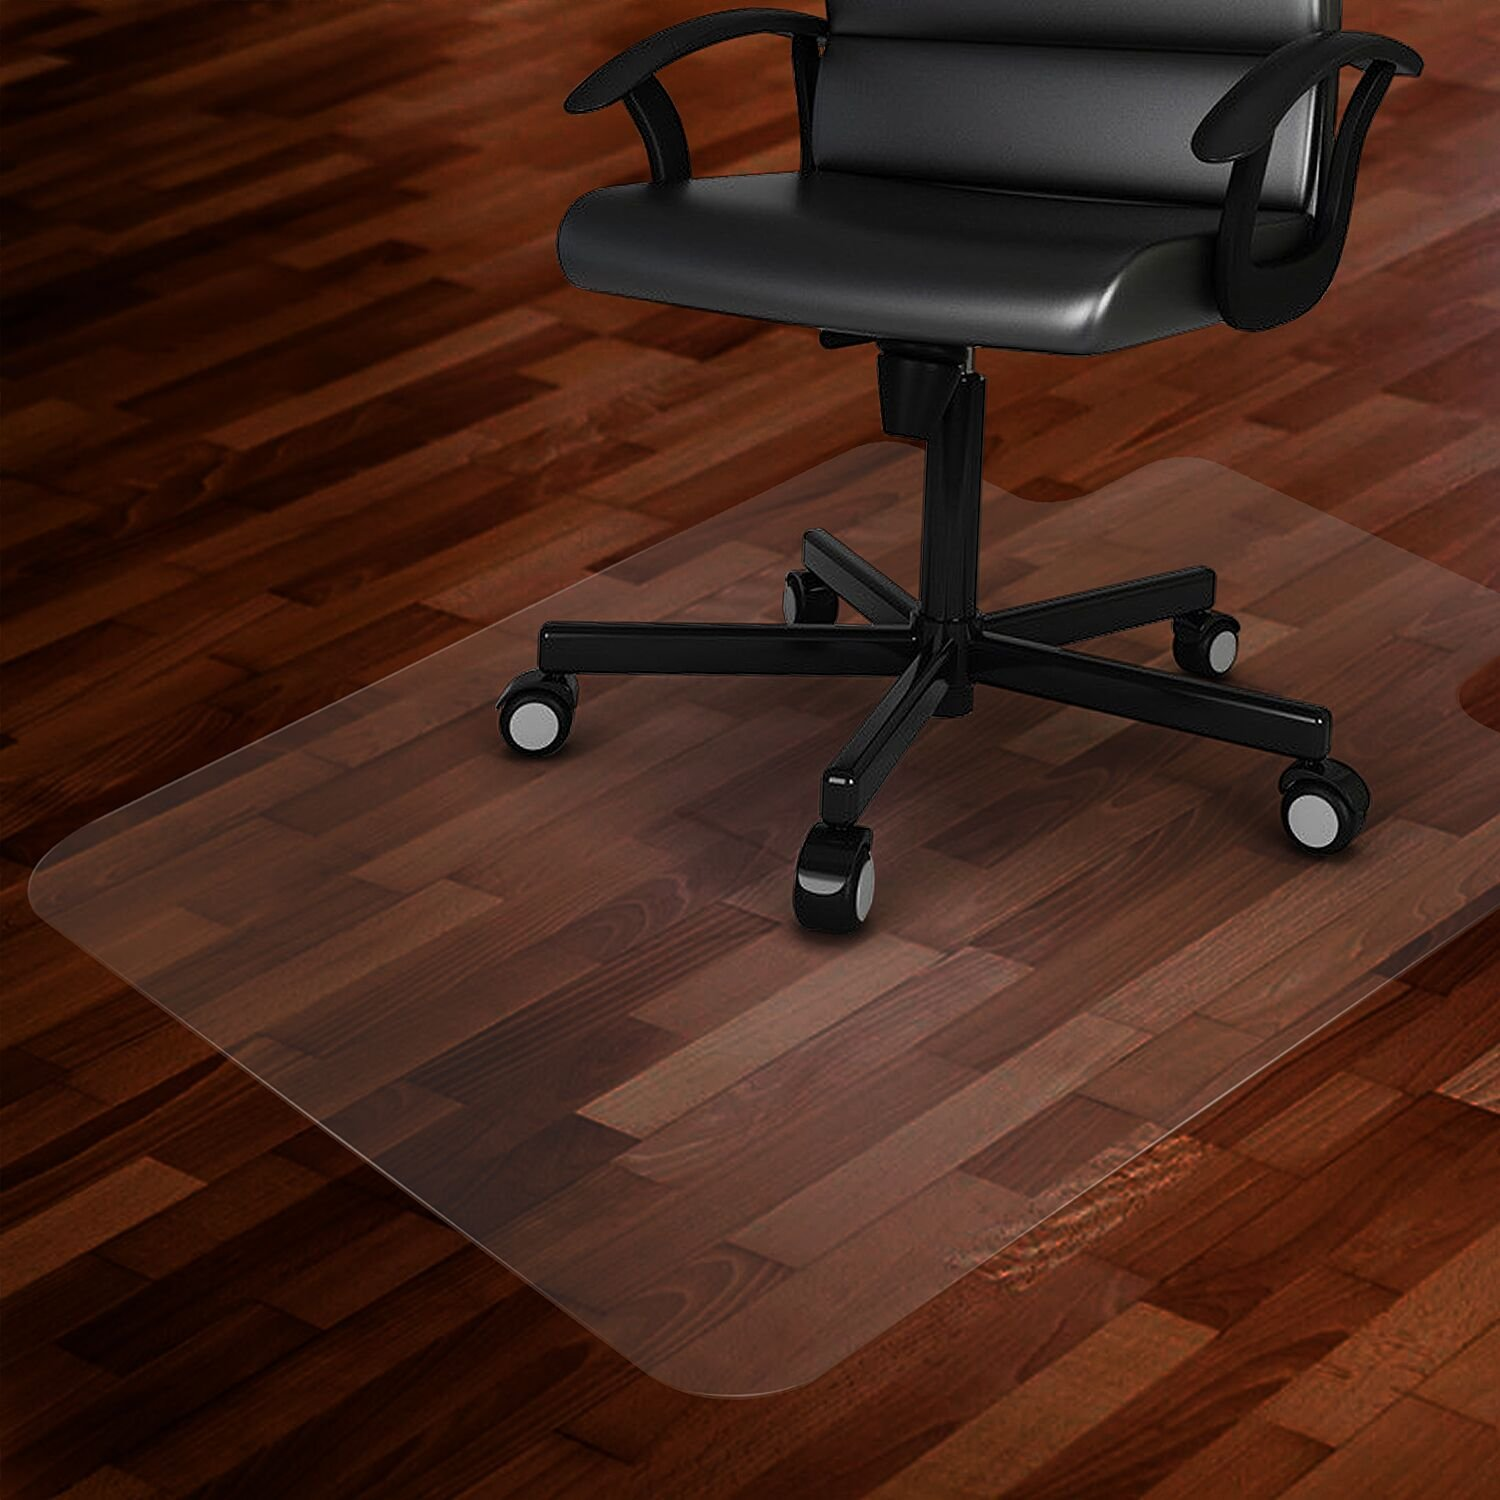 floor fascinating lovely for plastic chairs office chair photo carpet architecture mats